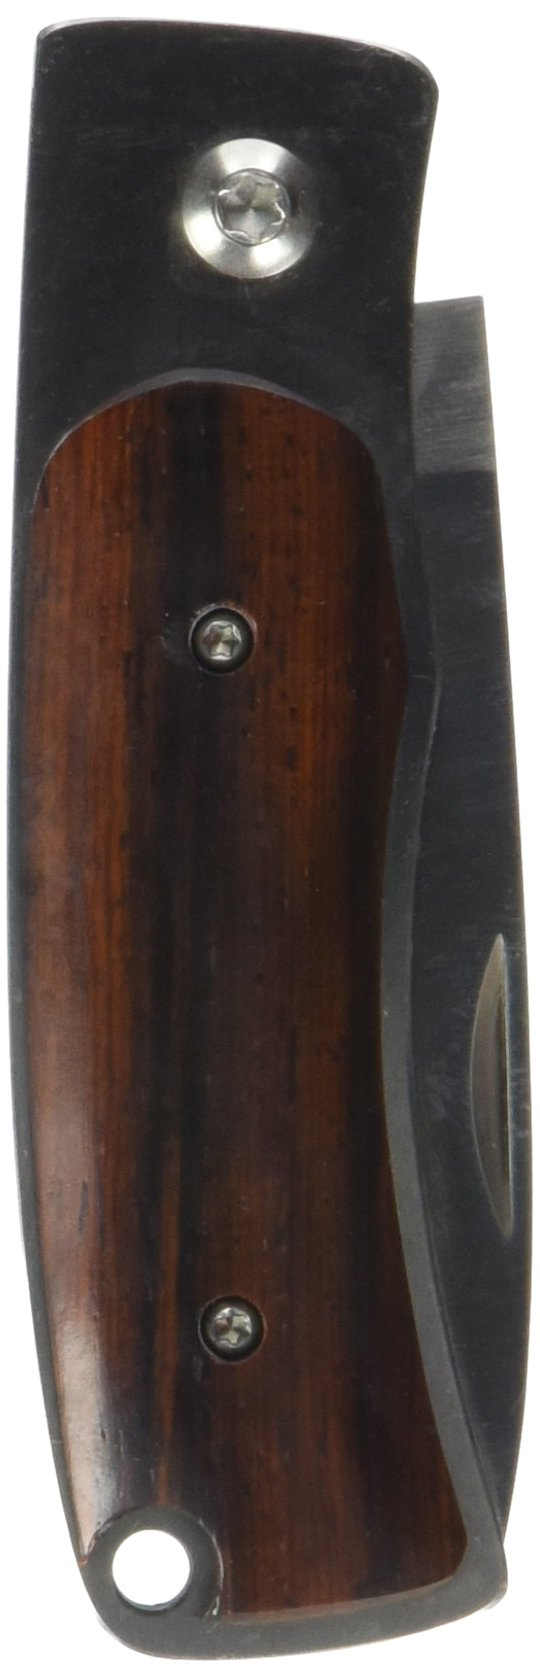 Fallkniven 9001769 U1c Fine Edge Folding Knife with Cocobolo Handle, Brown